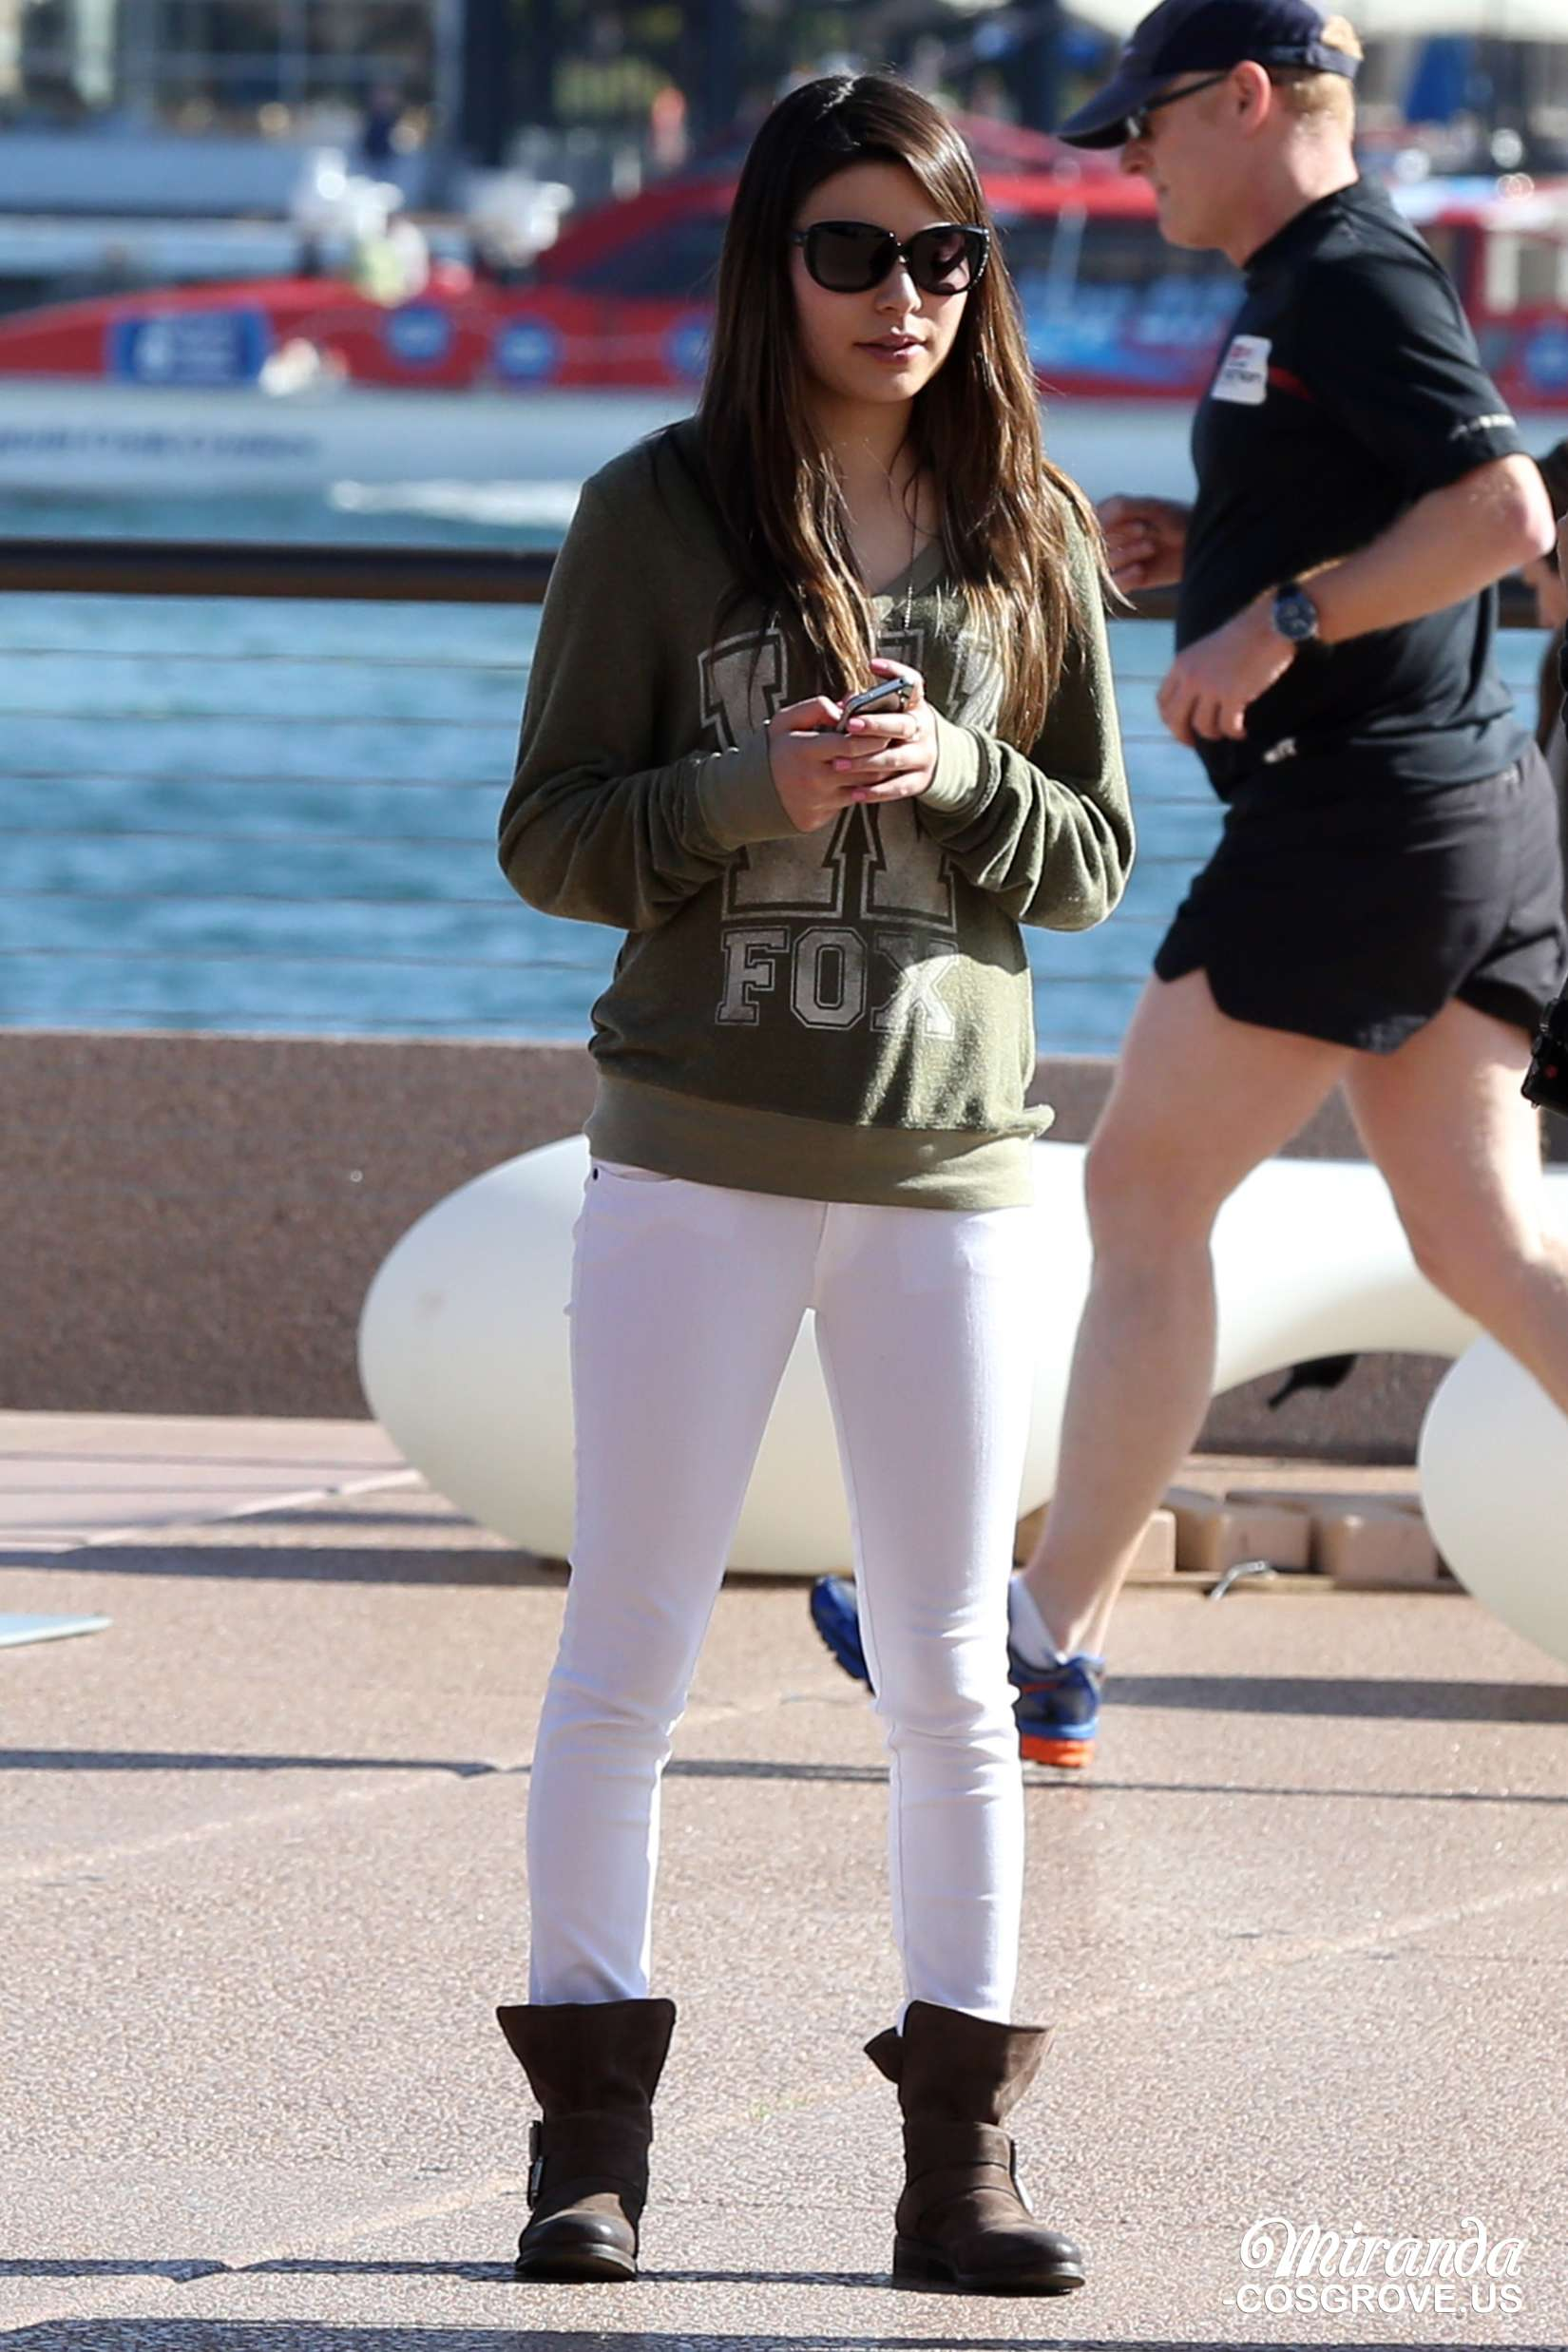 Miranda Cosgrove at The Sydney Opera House -16 - Full SizeMiranda Cosgrove House